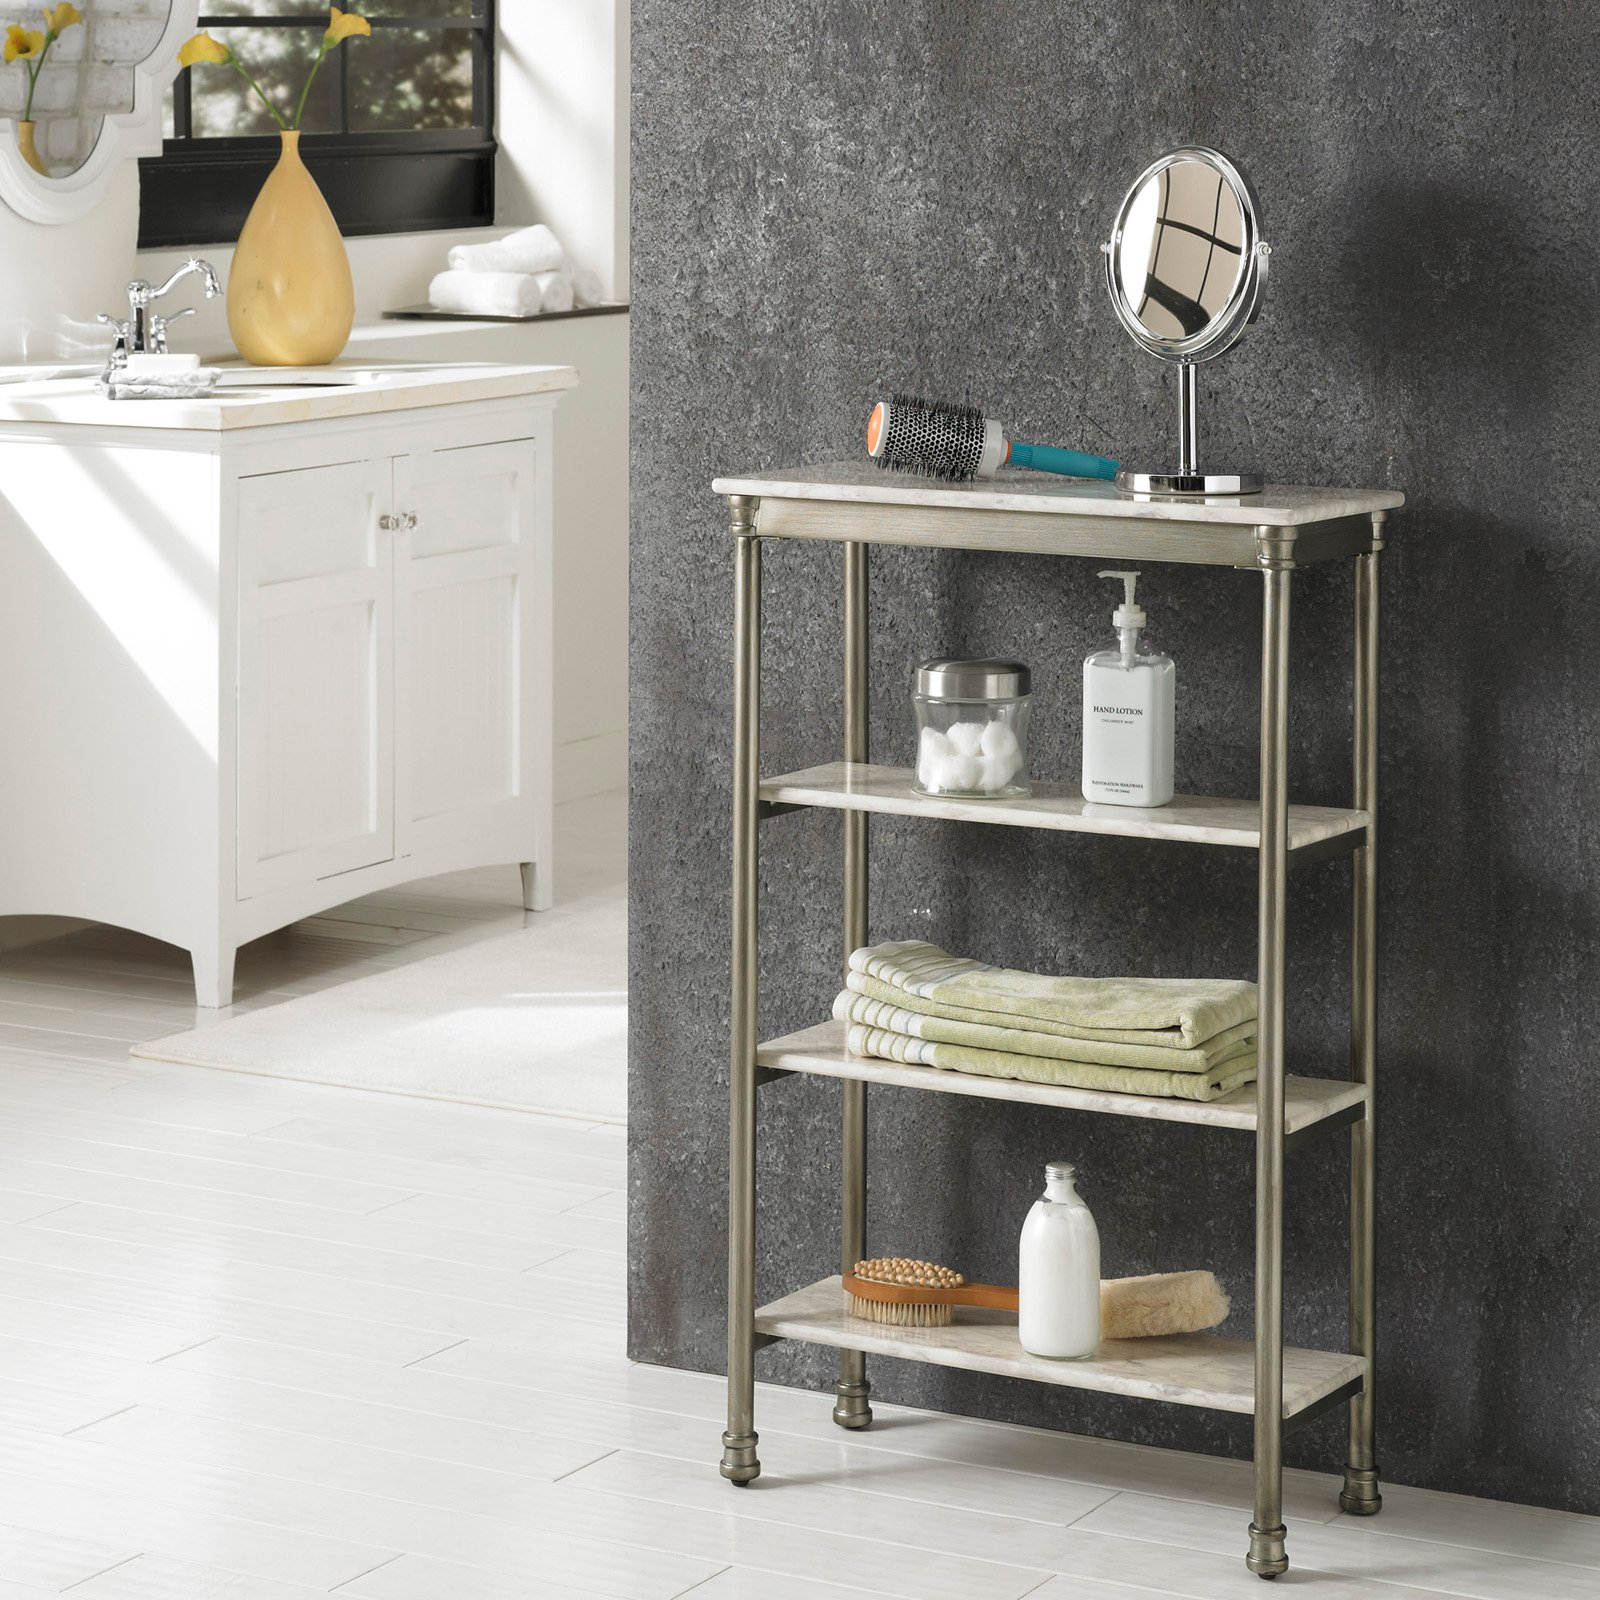 awesome luxury bathroom shelf south tier teak africa with in shower accessories corner caddies shelves pictures